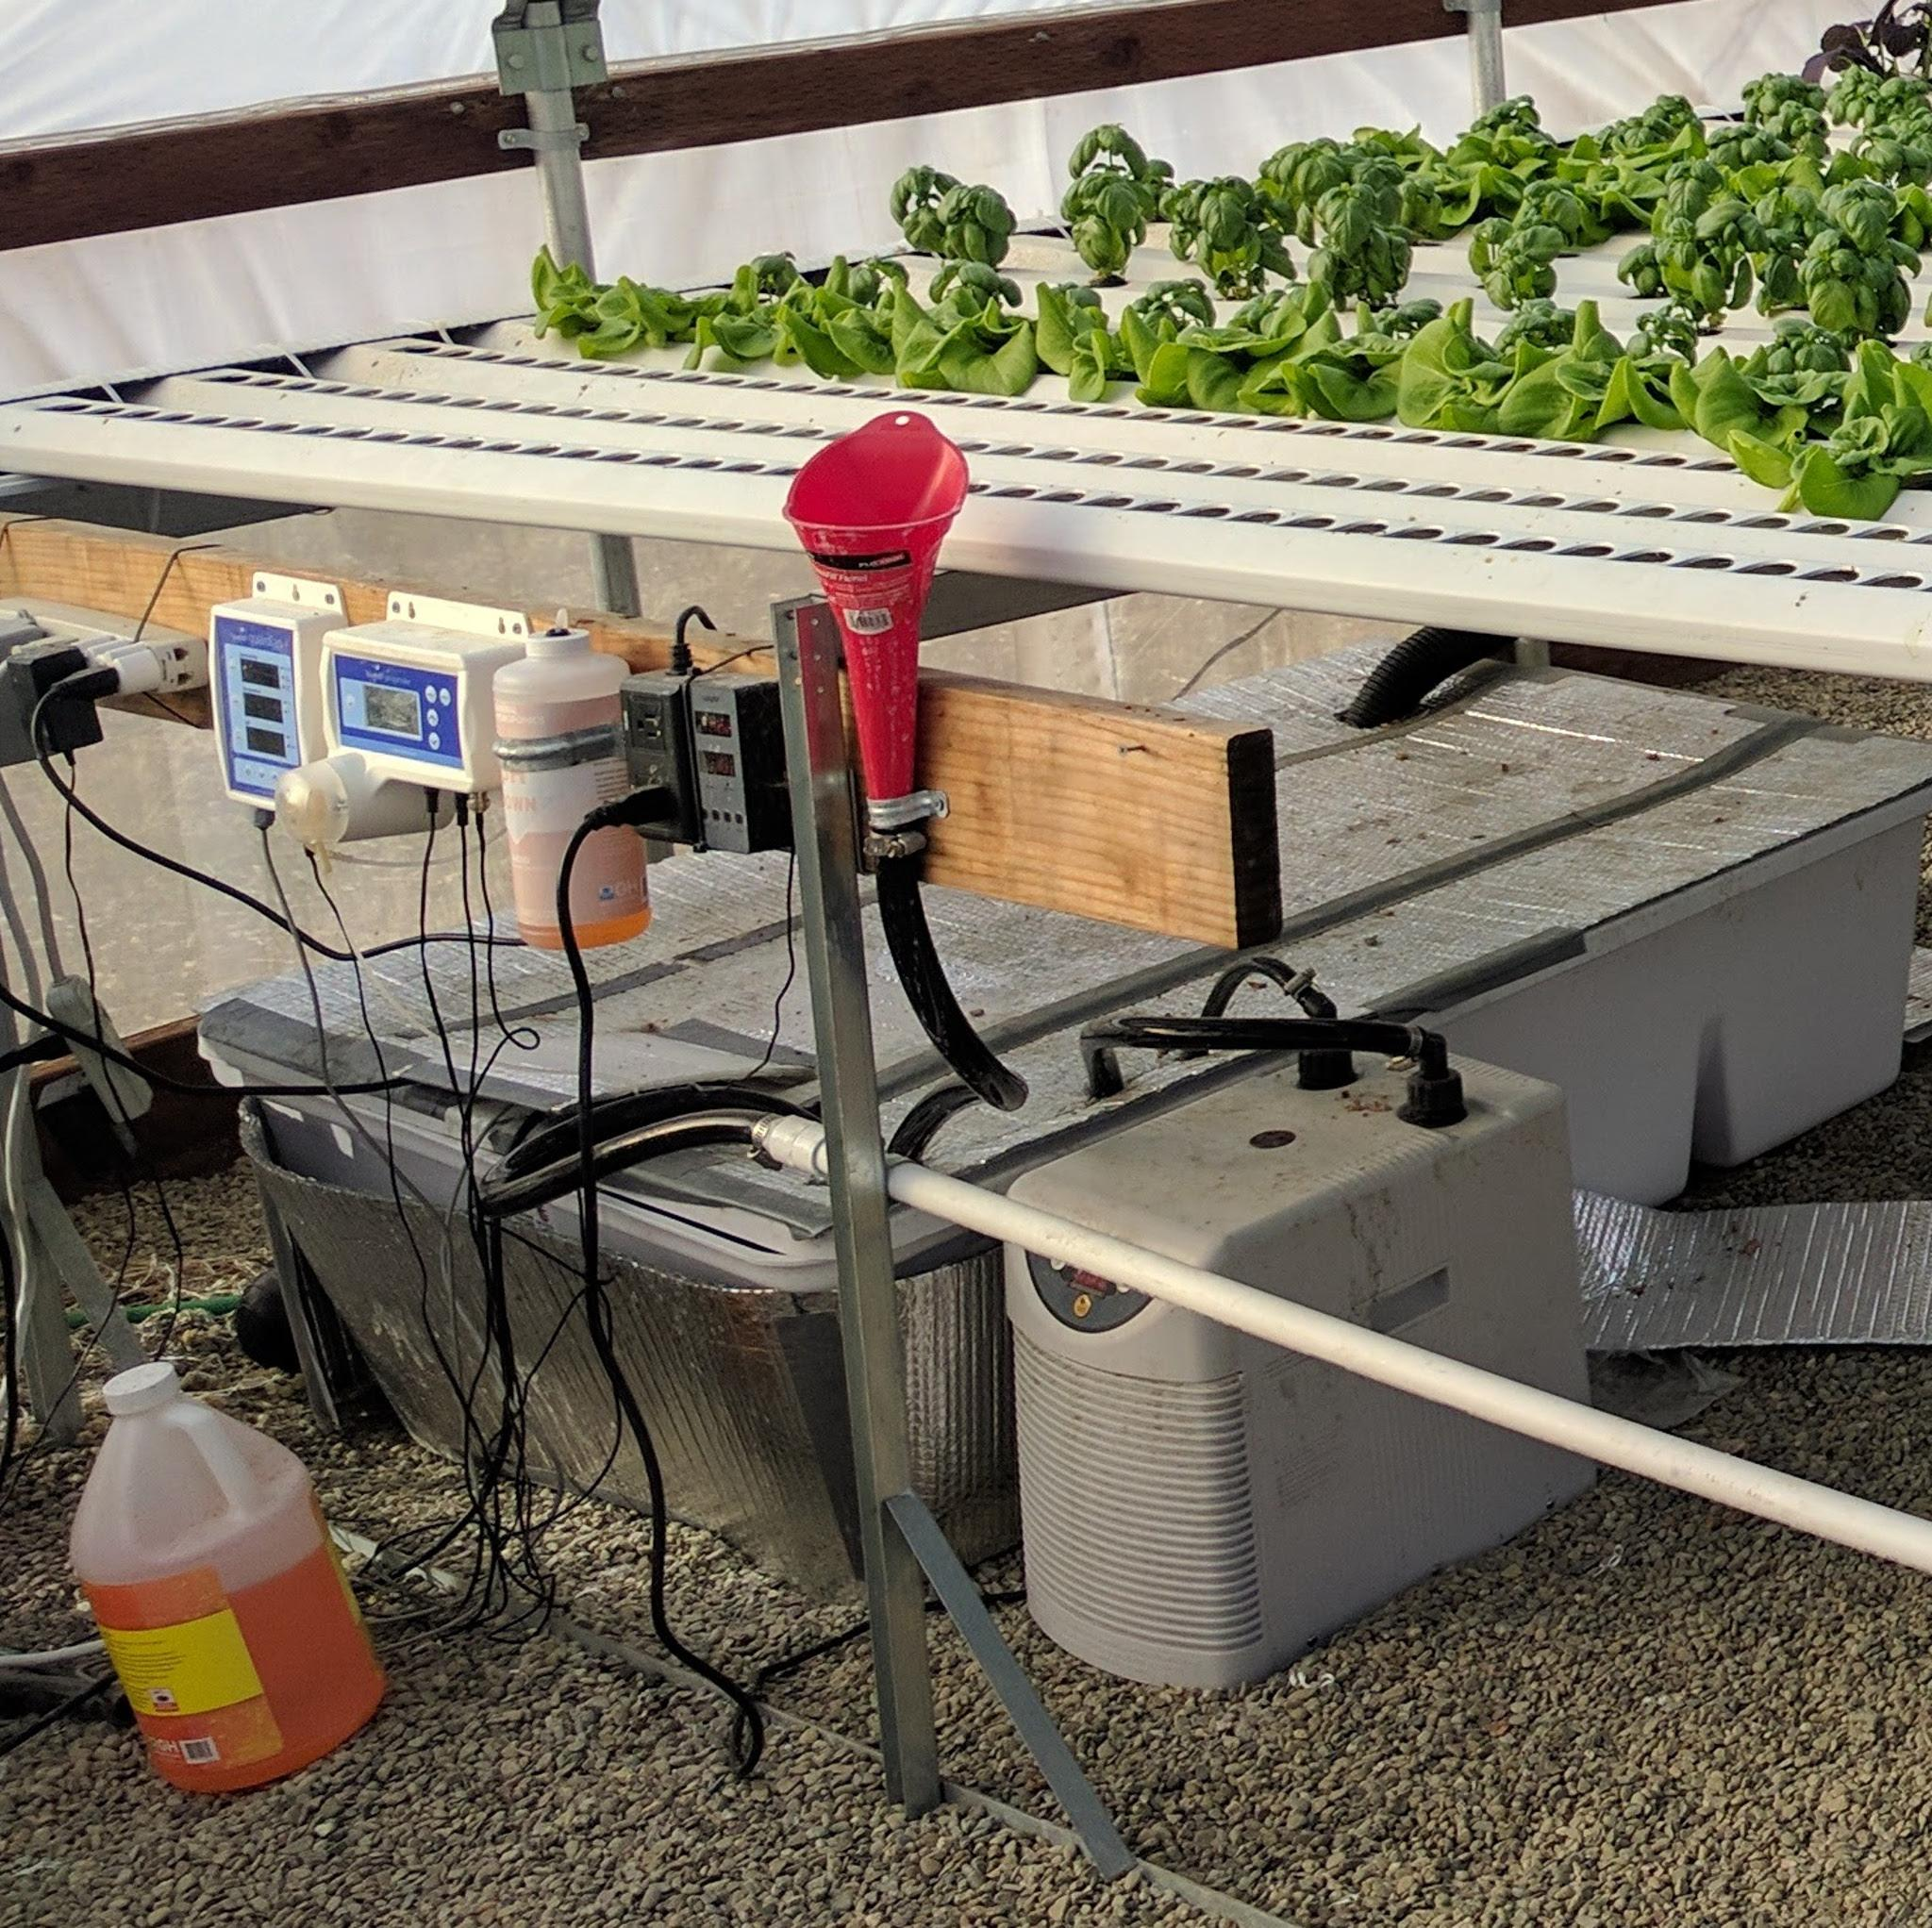 Greenhouse Control and Monitoring Systems